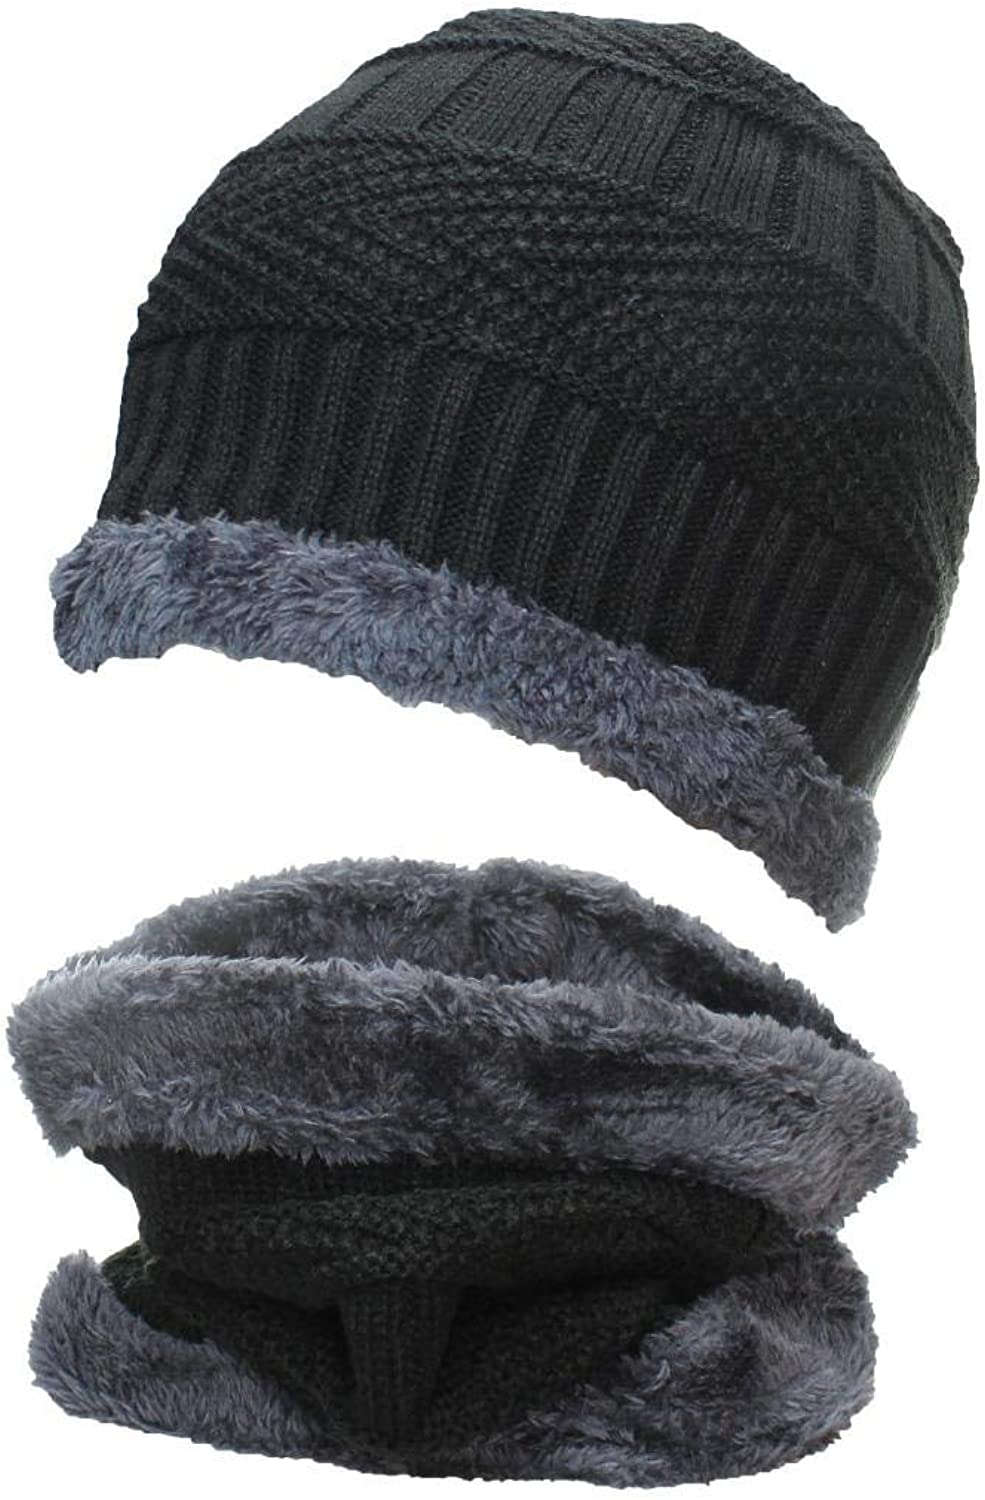 Best Winter Hats Adult Insulated Beanie & Neck Warmer Set W Faux Fur Liner